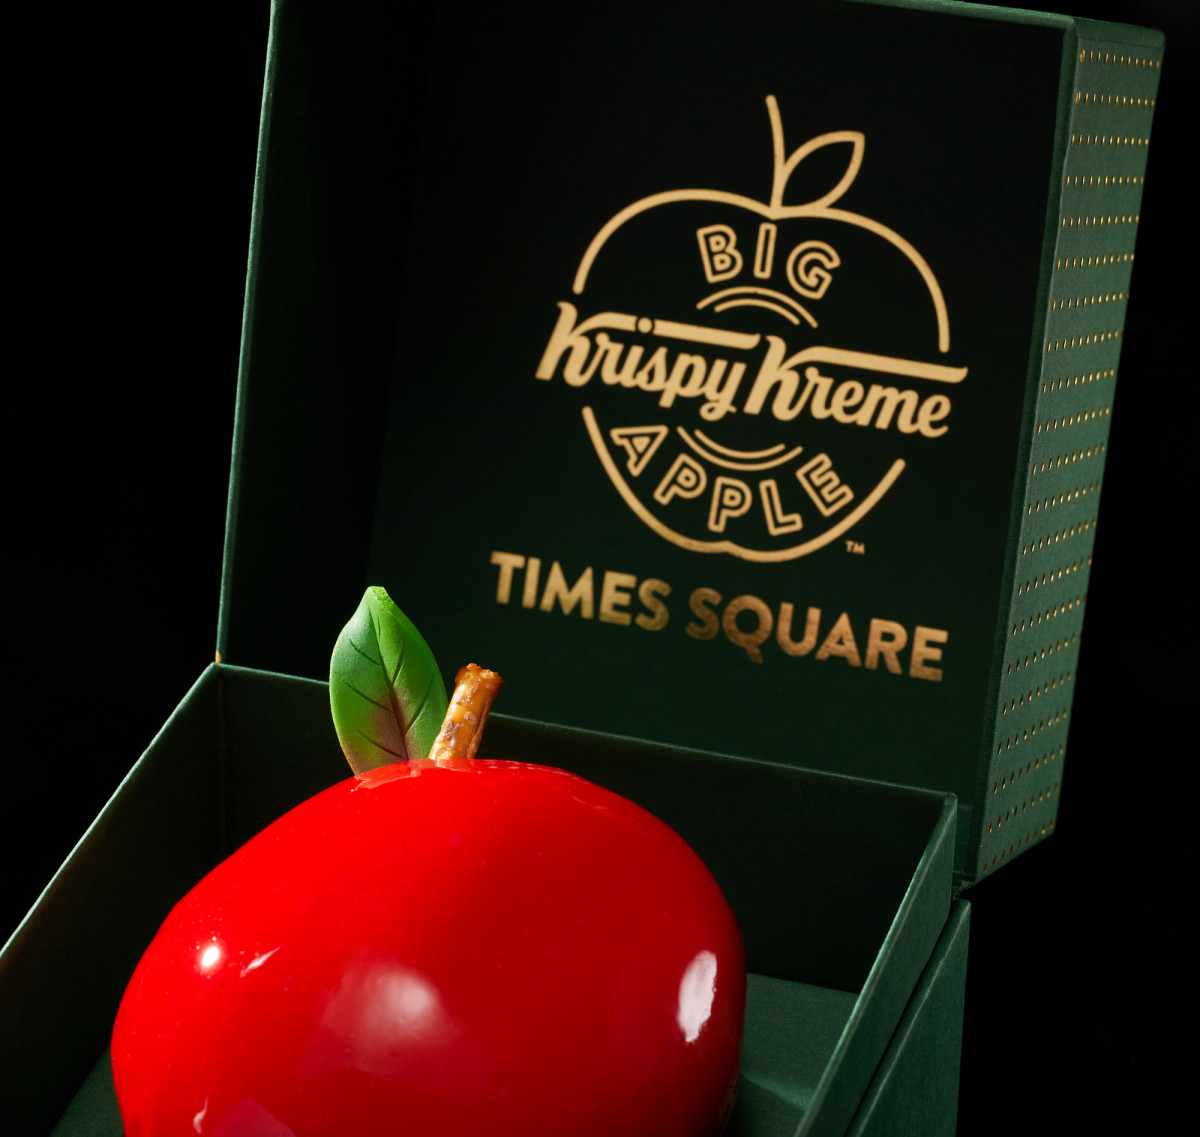 Commercial product photography of Krispy Kreme big red apple confection in a fancy green box